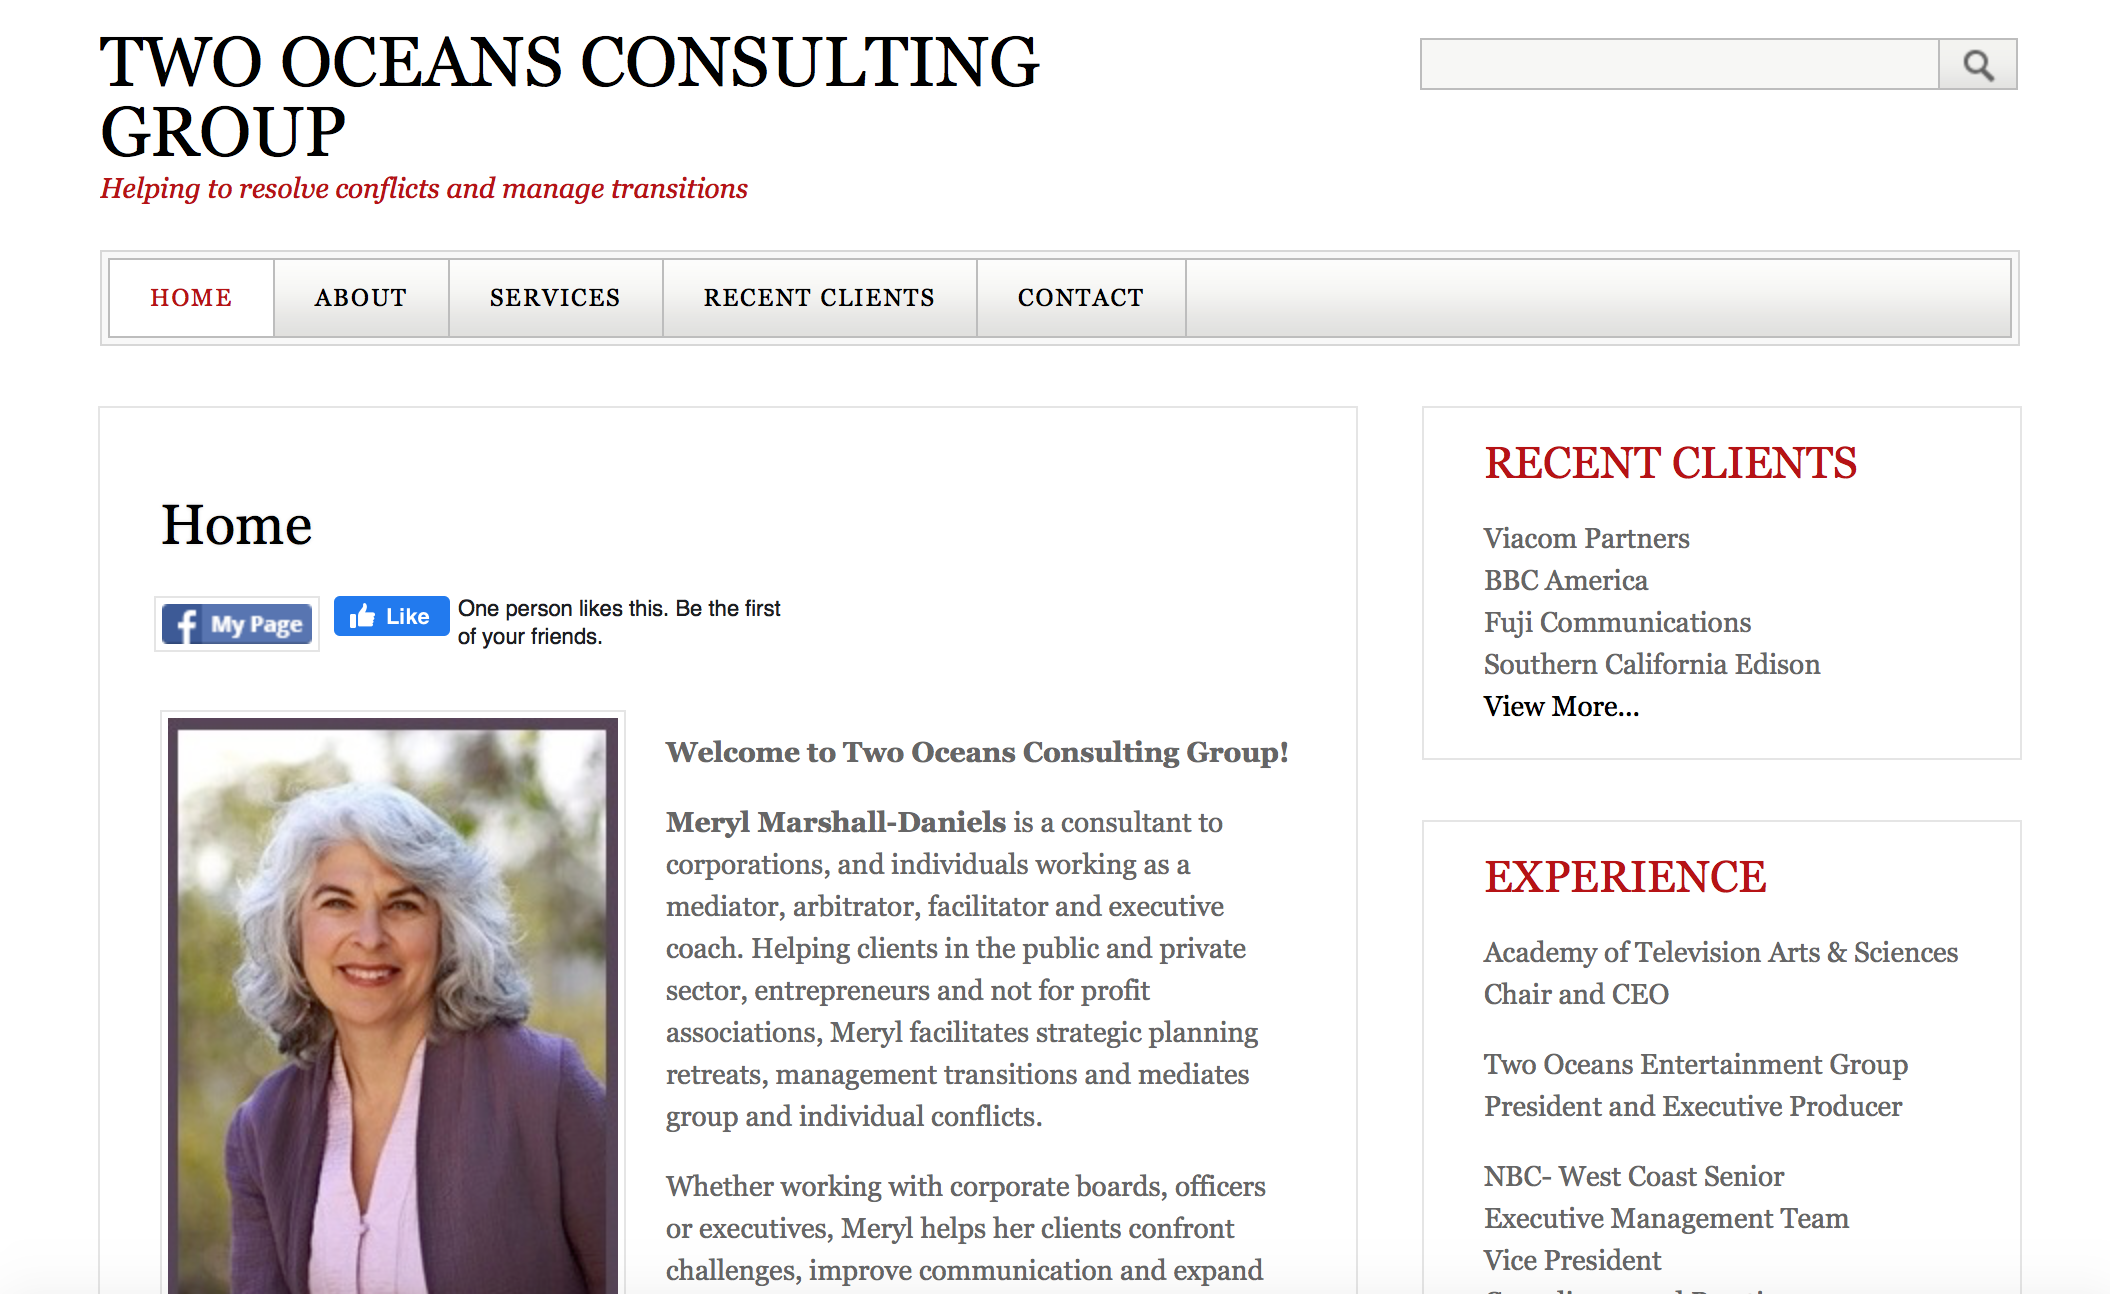 TWO OCEANS CONSULTING GROUP